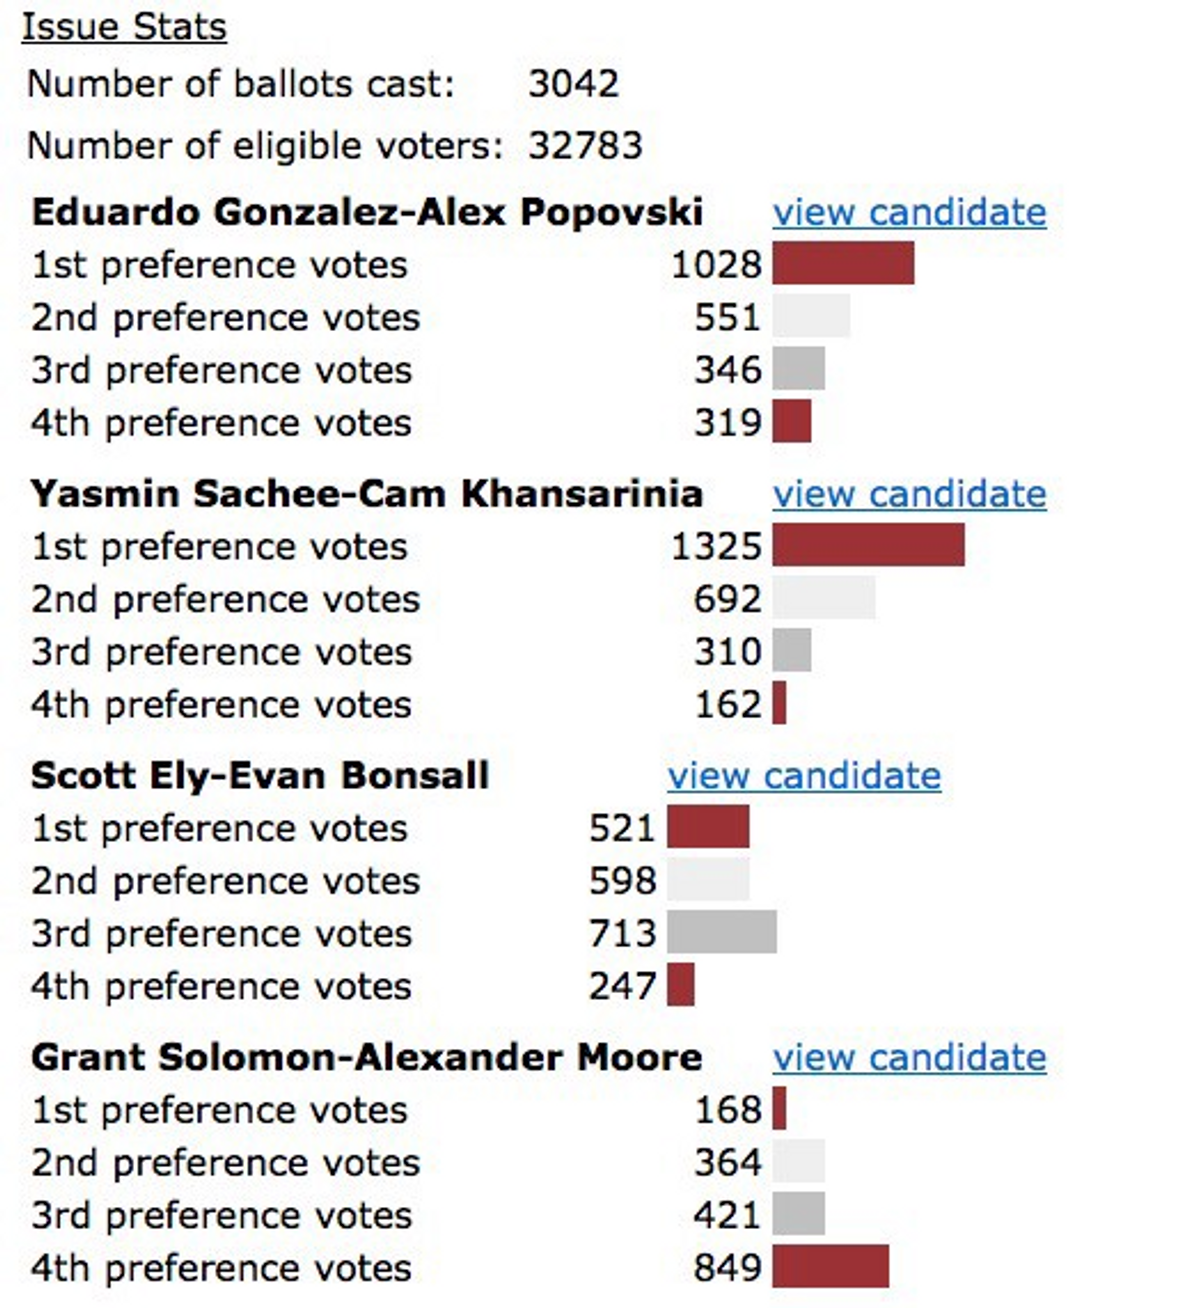 Last year's presidential results. Yasmin & Cameron finished first, followed by Eduardo & Alex, Scott & Evan, and Grant & Alexander.